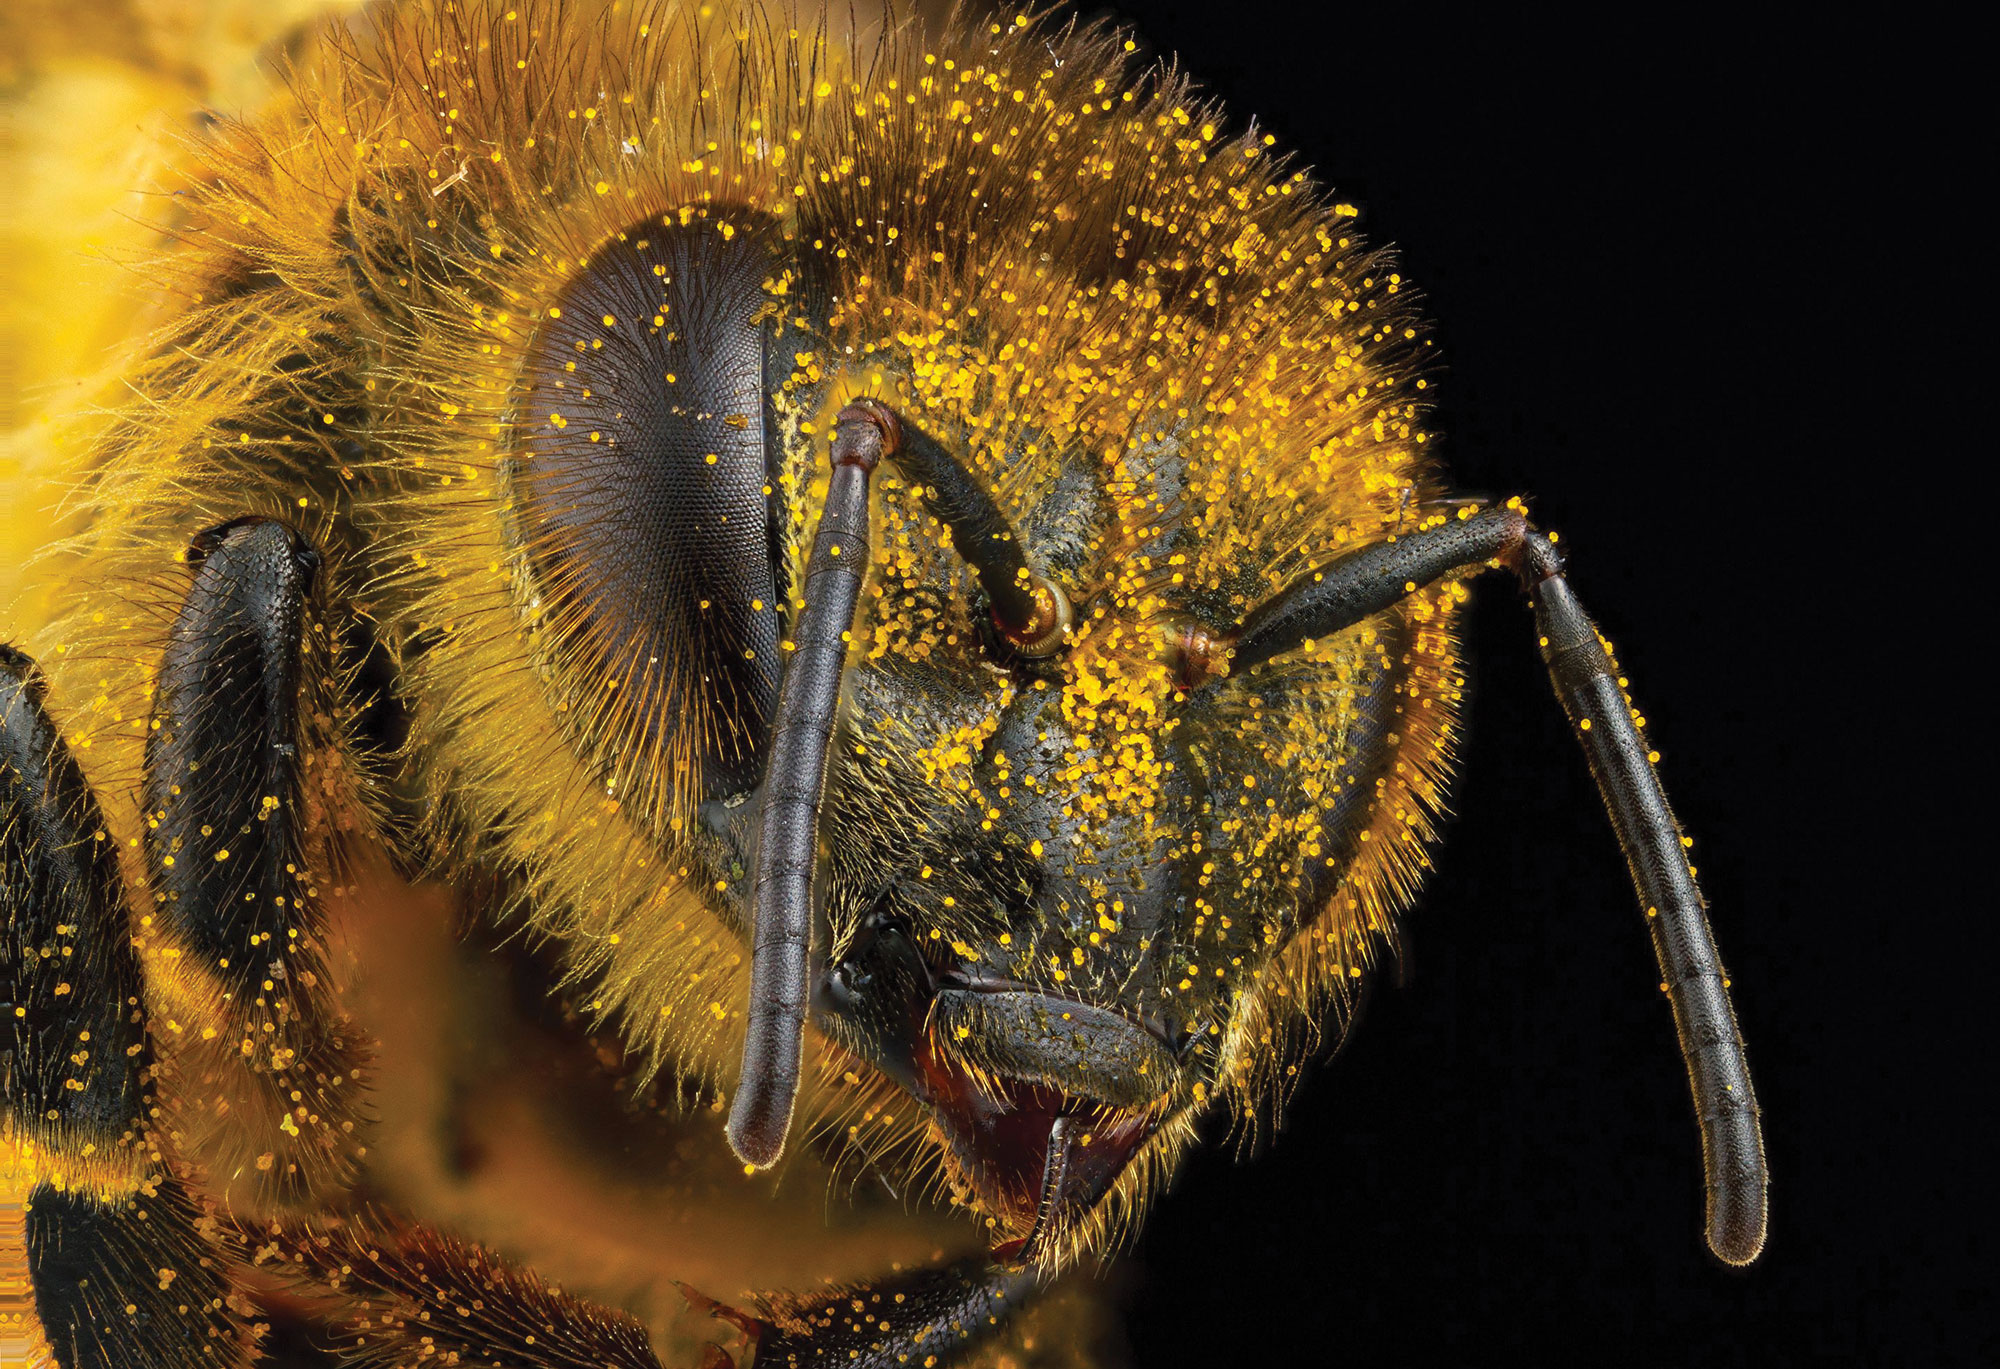 Detailed photo of a bee's head showing its eyes, antenna, and pollen-laced hair.